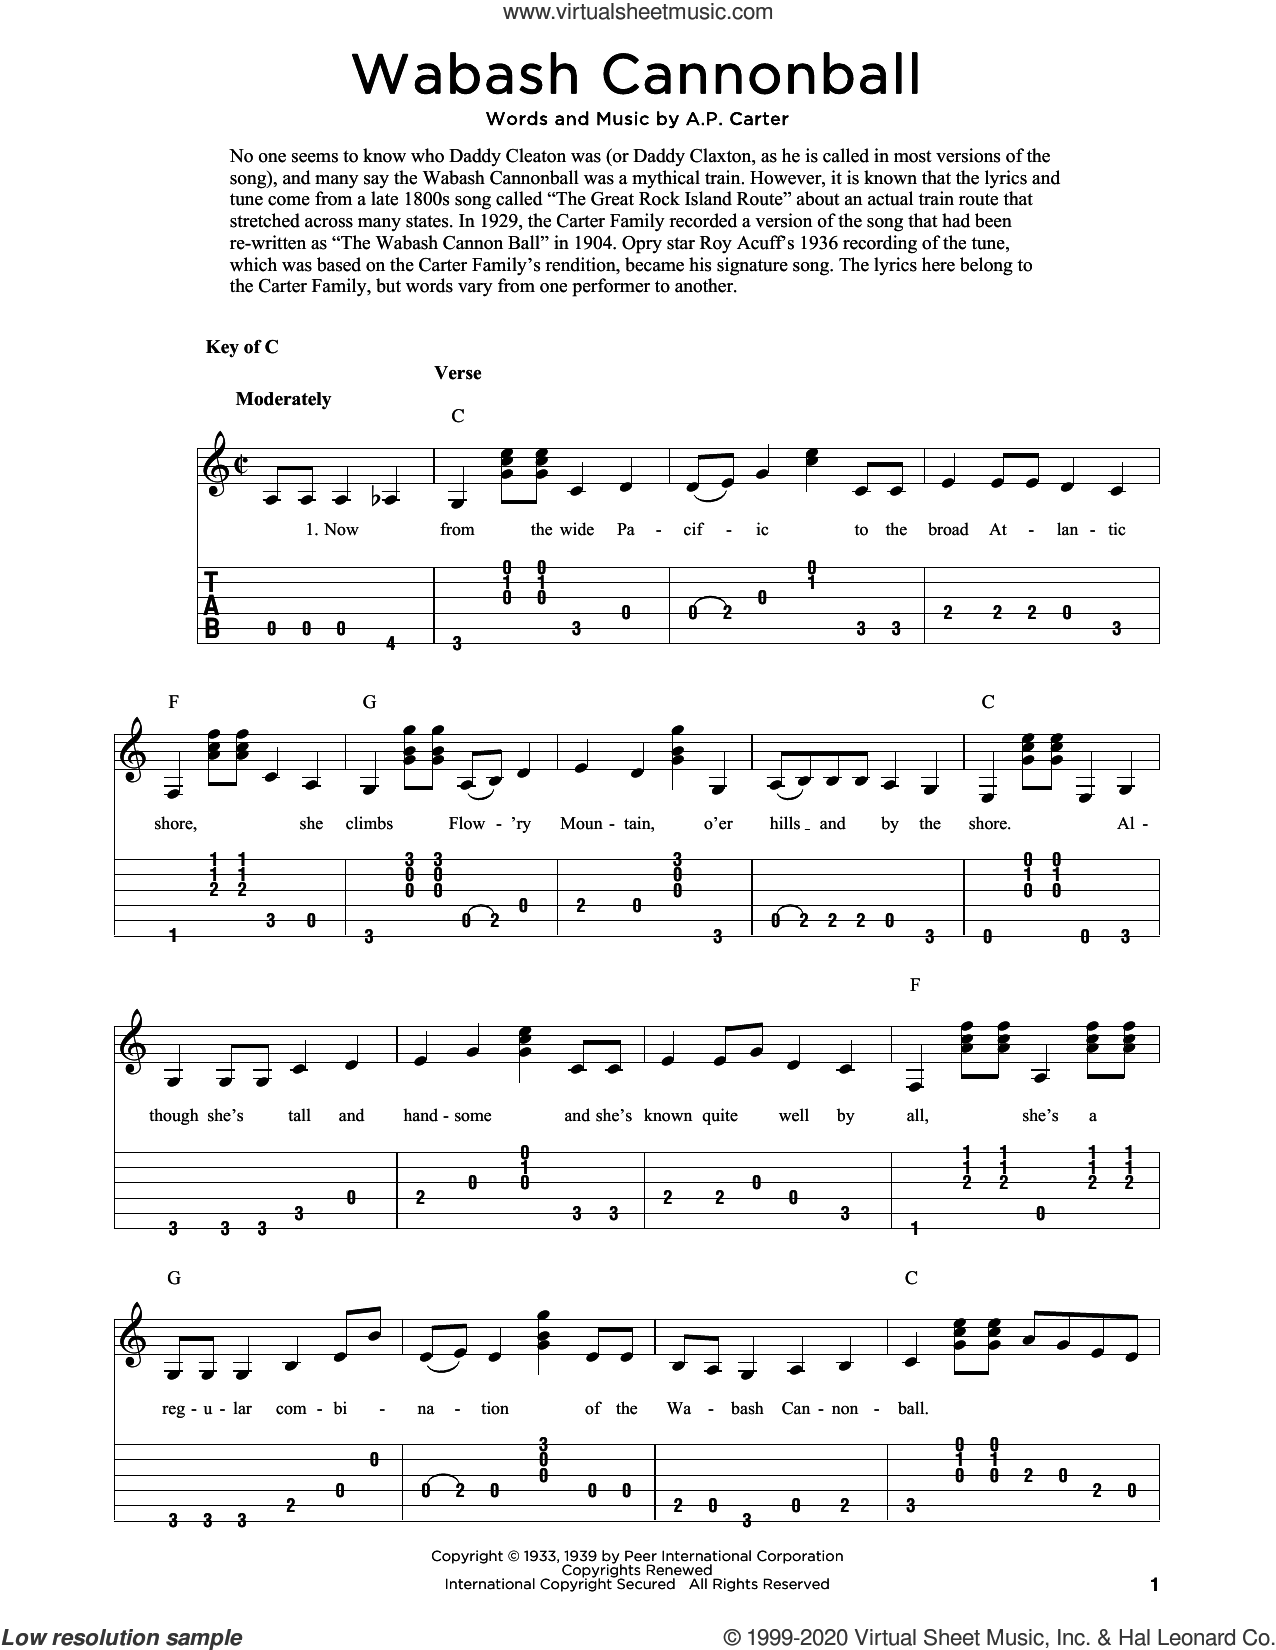 Wabash Cannonball (arr. Fred Sokolow) sheet music for guitar solo by The Carter Family, Fred Sokolow and A.P. Carter, intermediate skill level